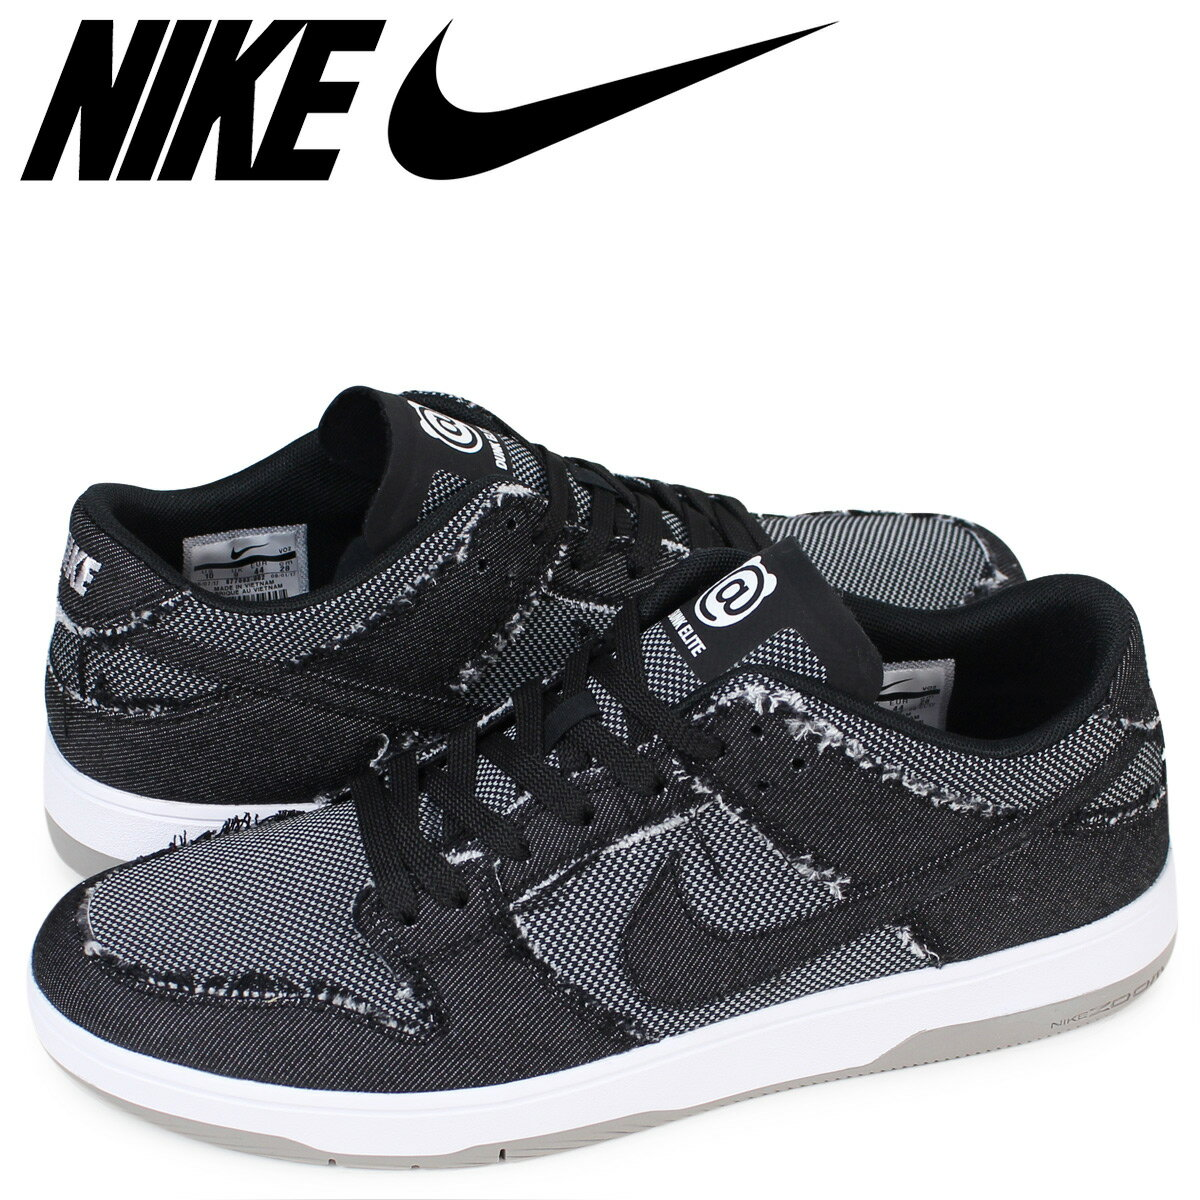 メンズ靴, スニーカー NIKE ZOOM DUNK LOW ELITE QS MEDICOM TOY BERBRICK SB 877063-002 zzi